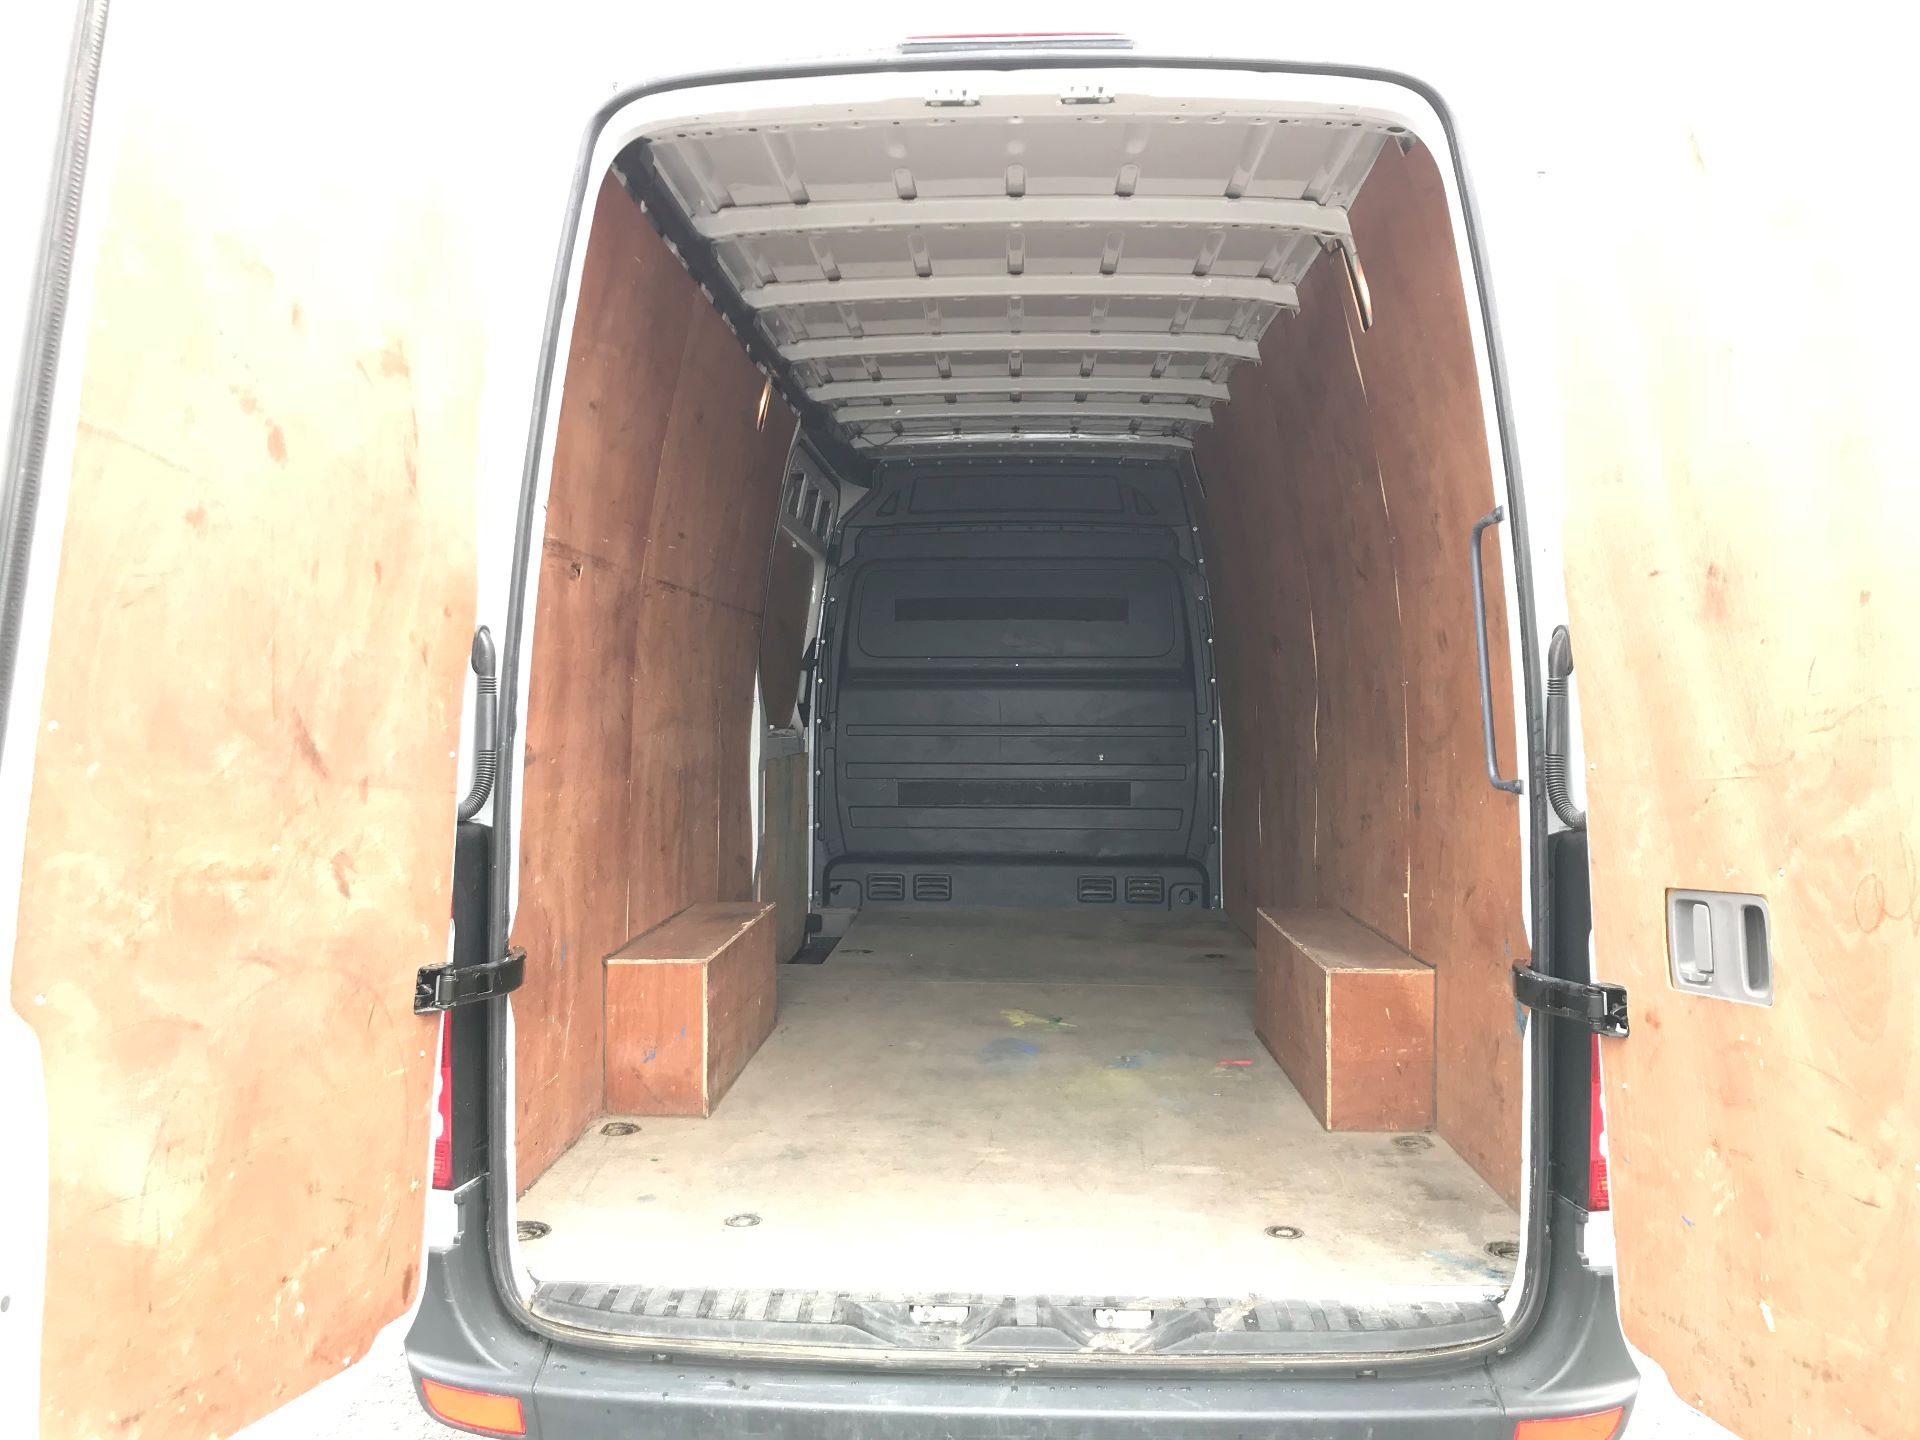 2017 Mercedes-Benz Sprinter 3.5T High Roof Van *VALUE RANGE VEHICLE CONDITION REFLECTED IN PRICE* (KY17GXT) Image 16